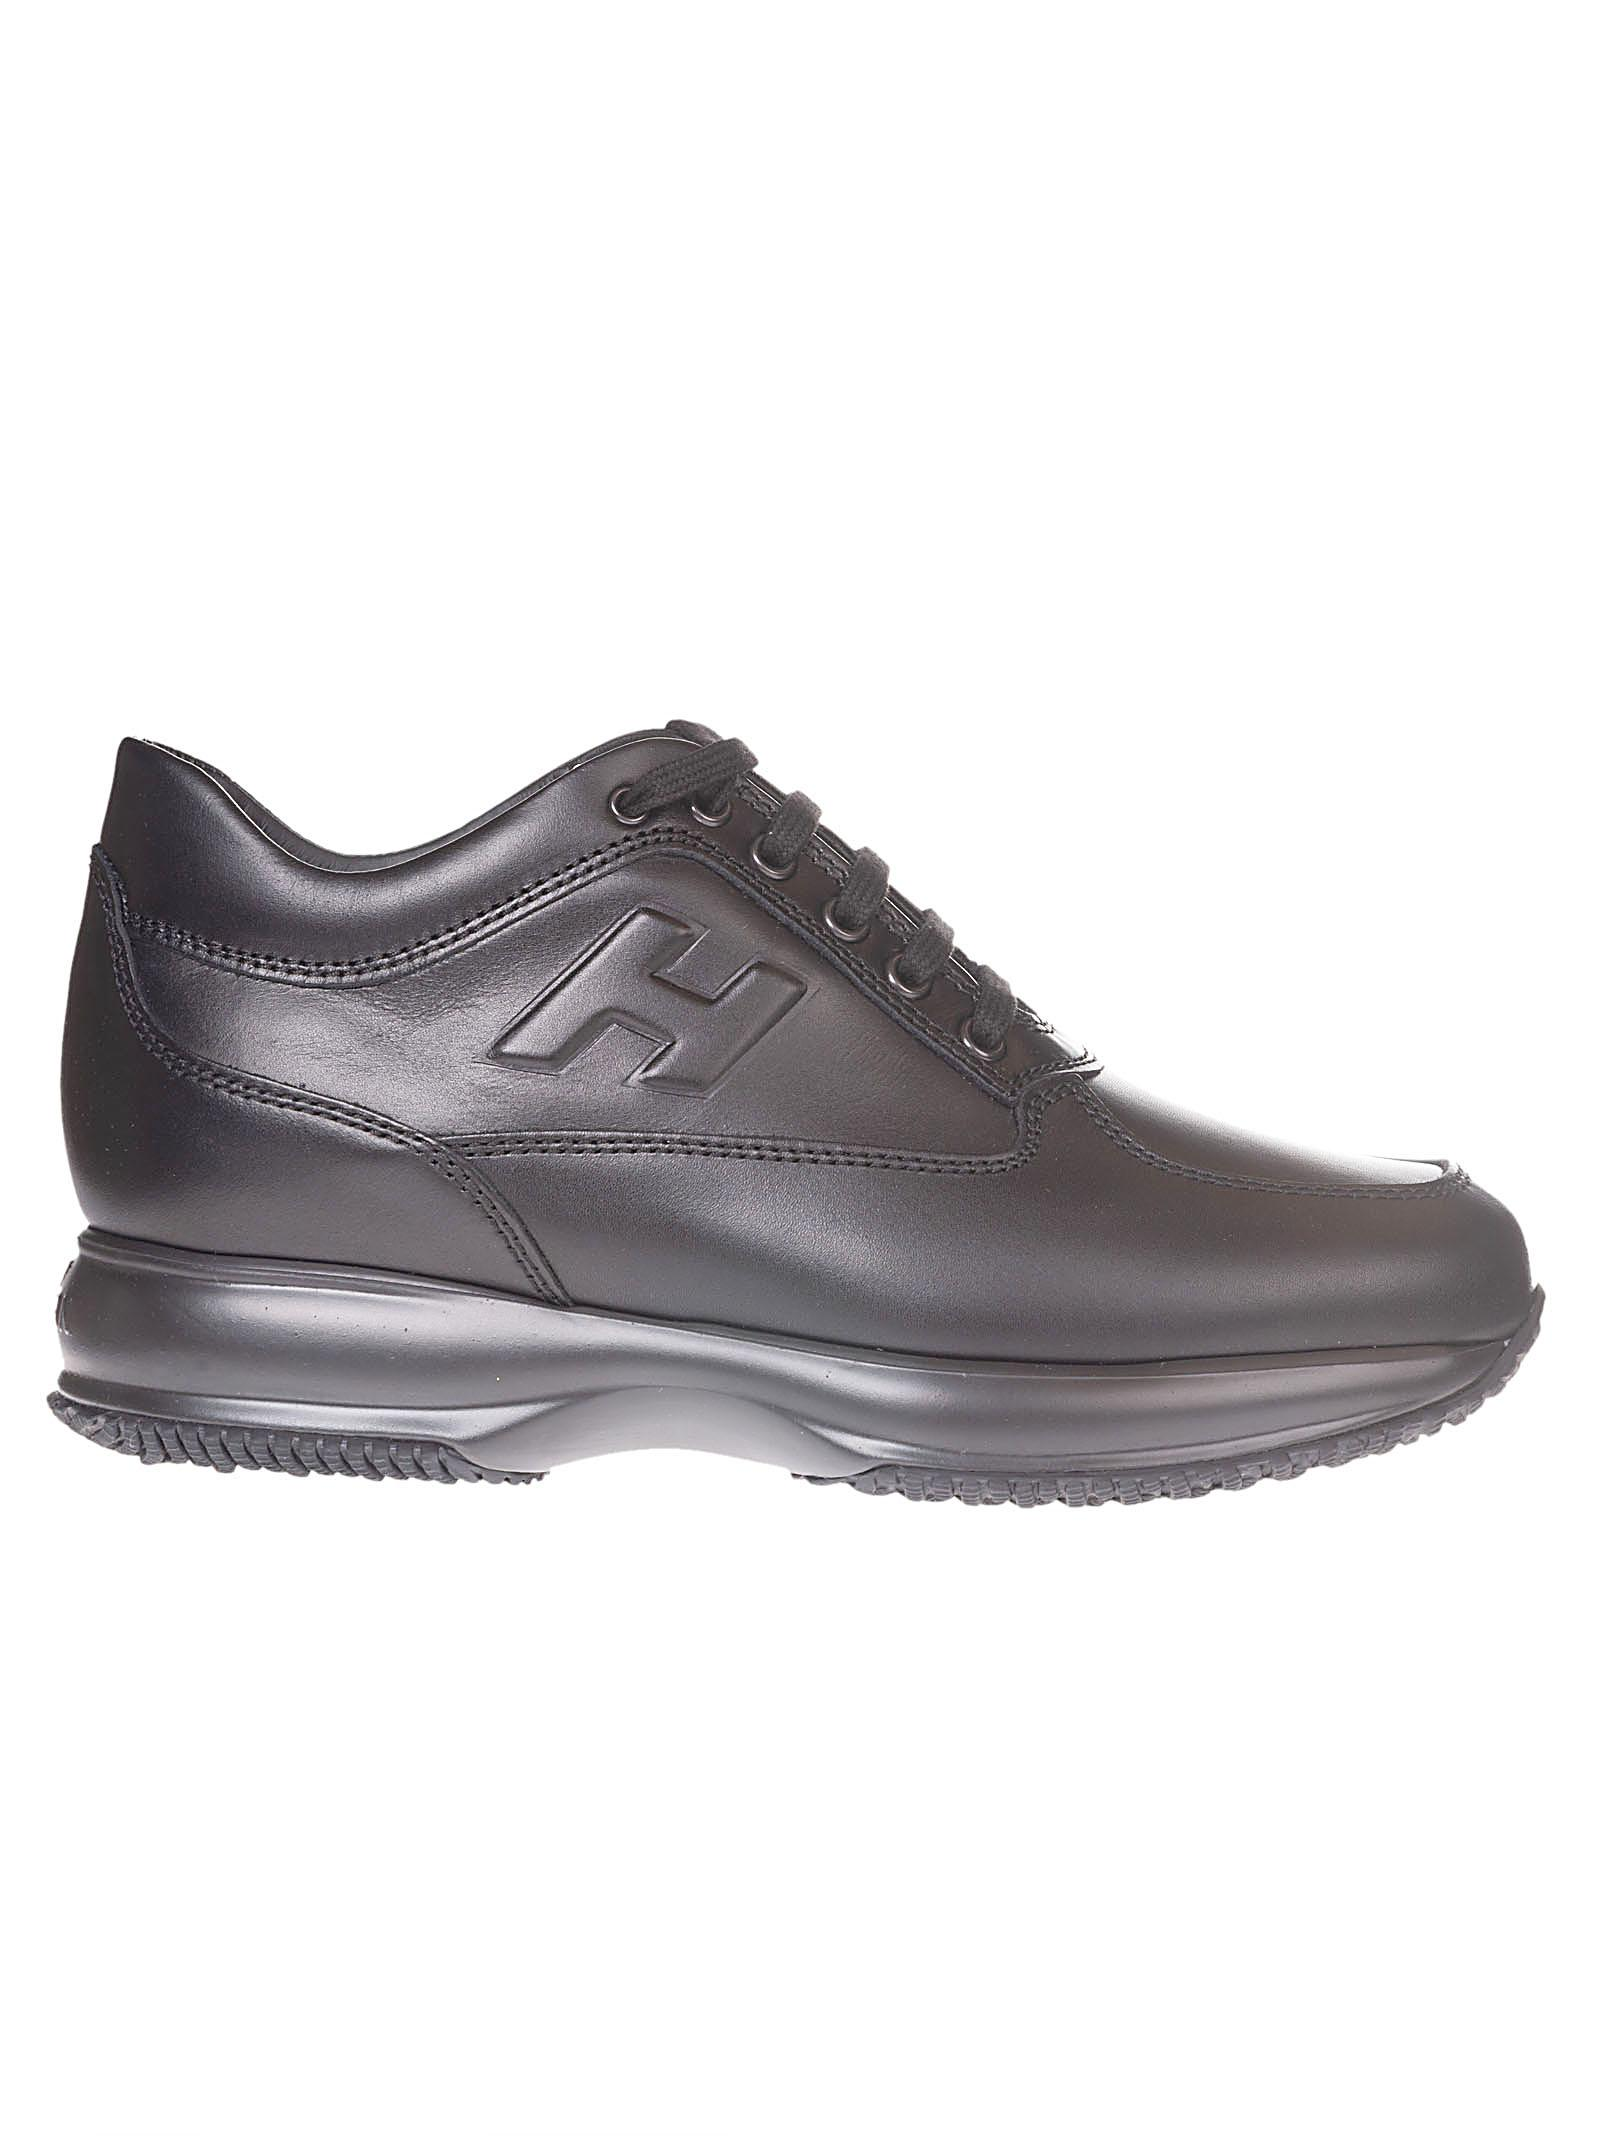 a75bf9294b72 Lyst - Hogan Shoes for Men